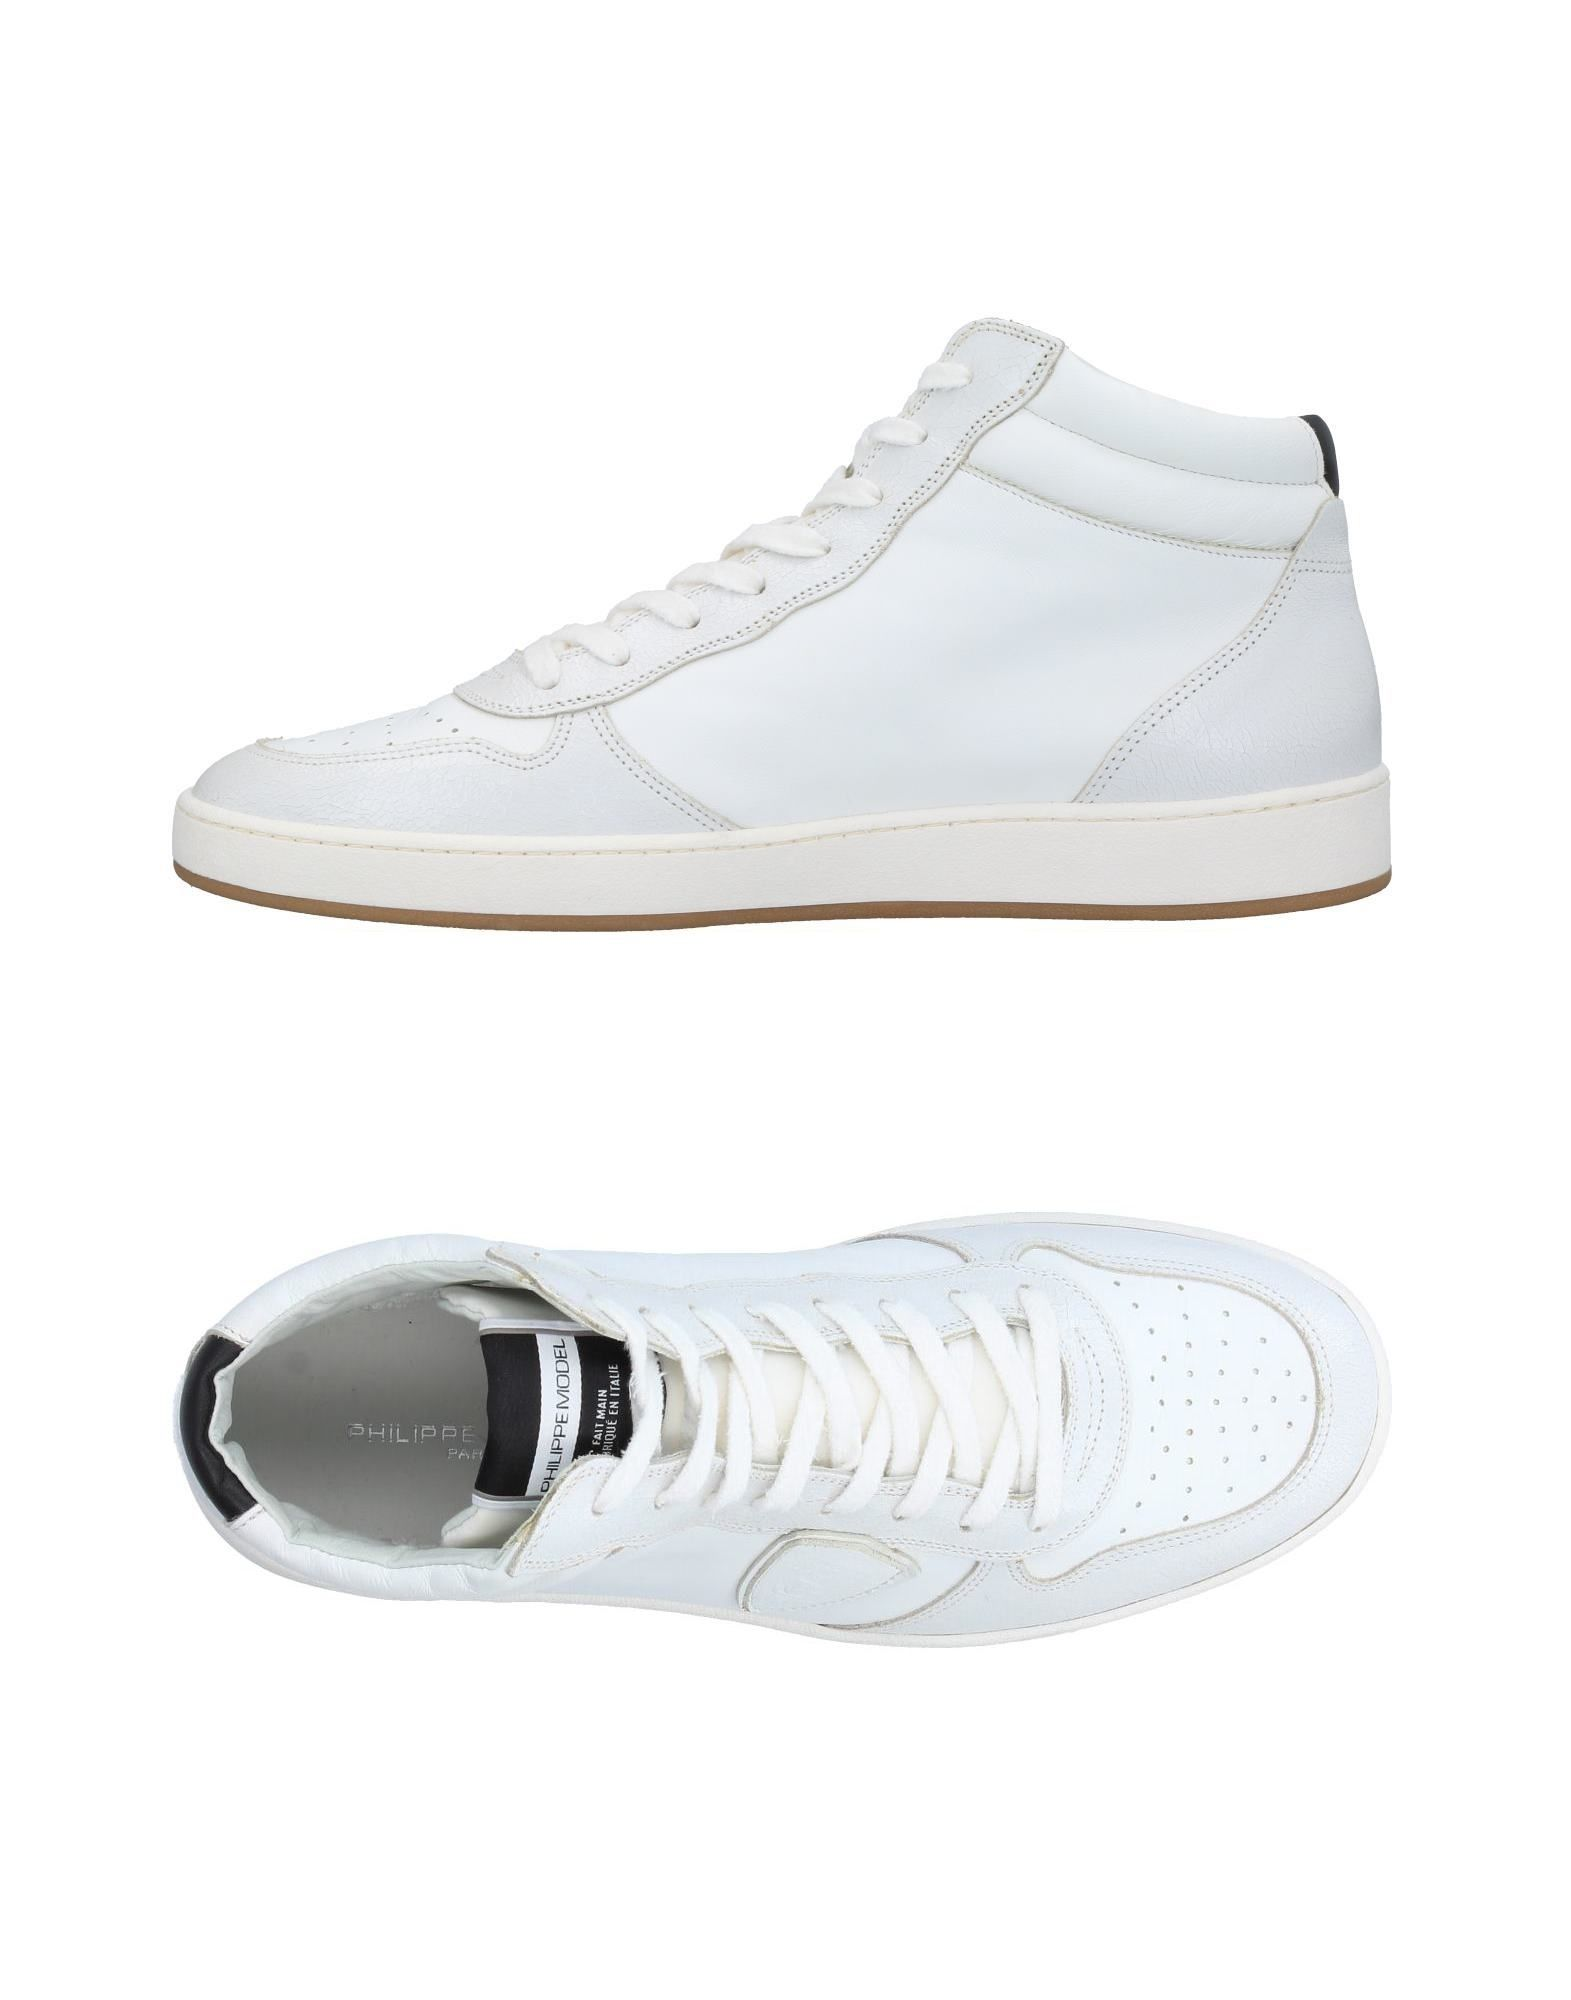 Philippe Model Sneakers Herren  11362249NU